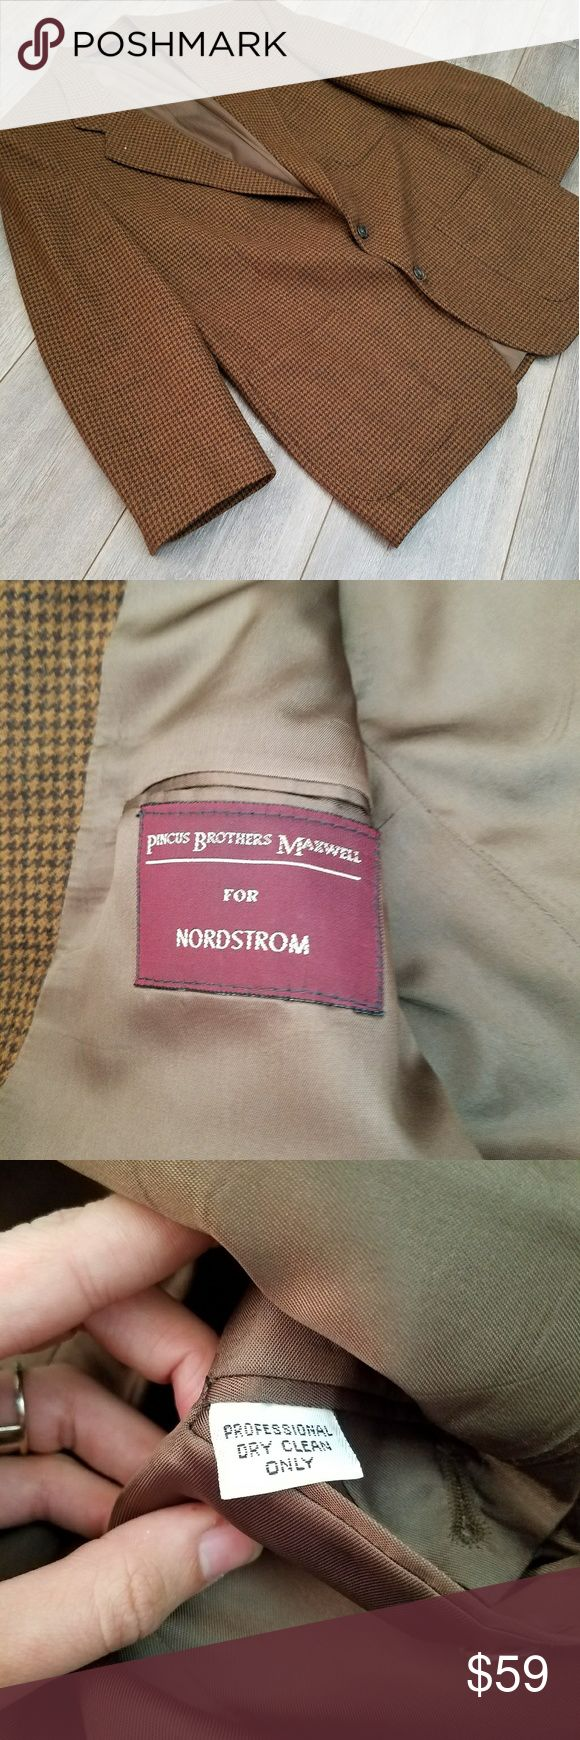 """Nordstrom tailored vintage blazer Vintage blazer! Very fun pattern in a simple tan/ brown color variety.  Dimensions Length 30.5"""" Chest 46"""" Sleeve 23"""" Shoulder 19.5"""" Waist 22.5"""" Nordstrom Suits & Blazers Sport Coats & Blazers"""